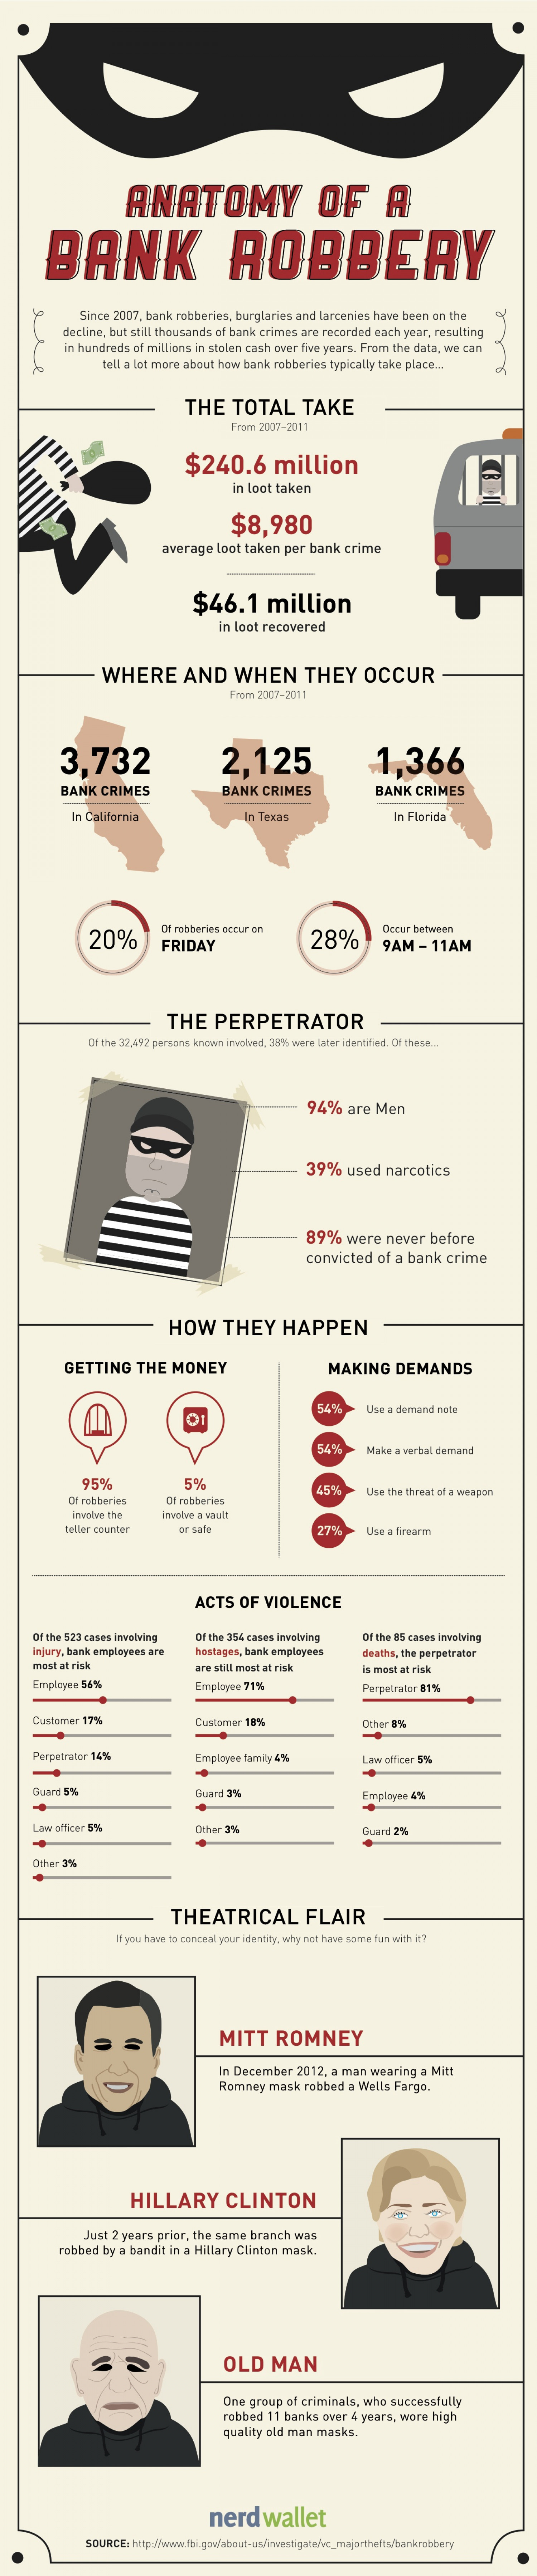 Anatomy of a Bank Robbery Infographic